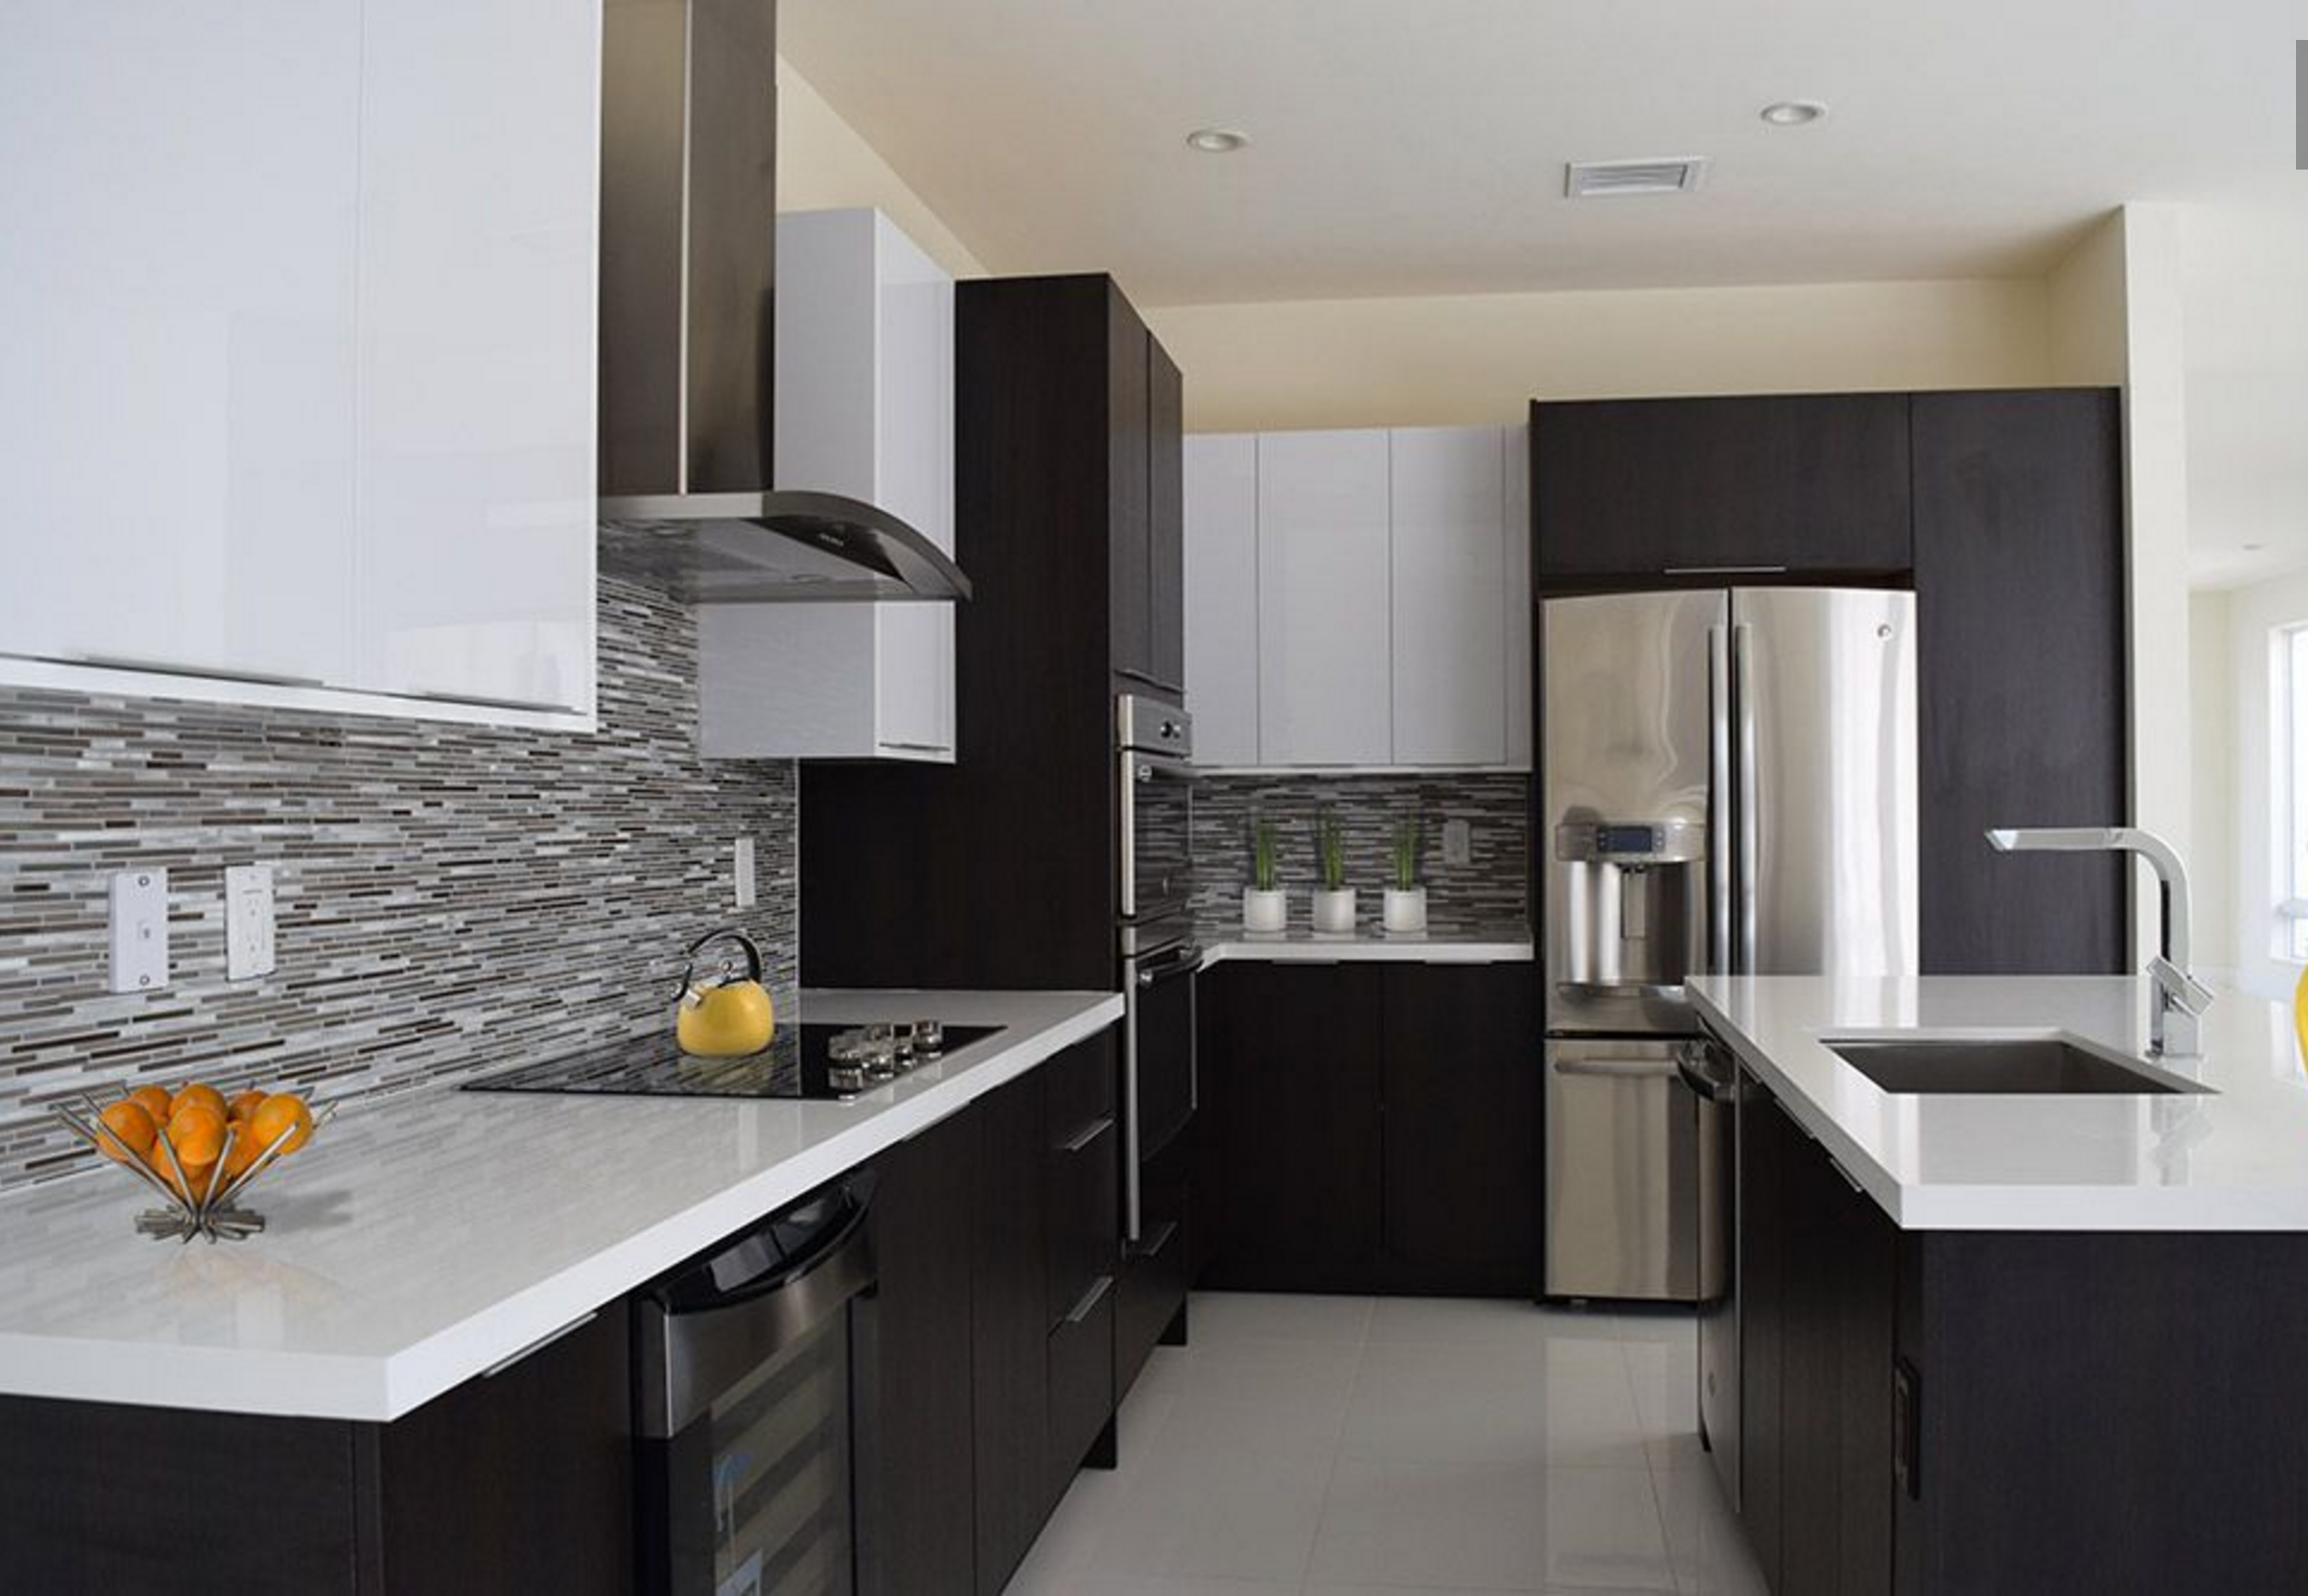 What Would You Cook Up In This Sleek And Functional Kitchen Featuring Italian  Cabinetry Products?